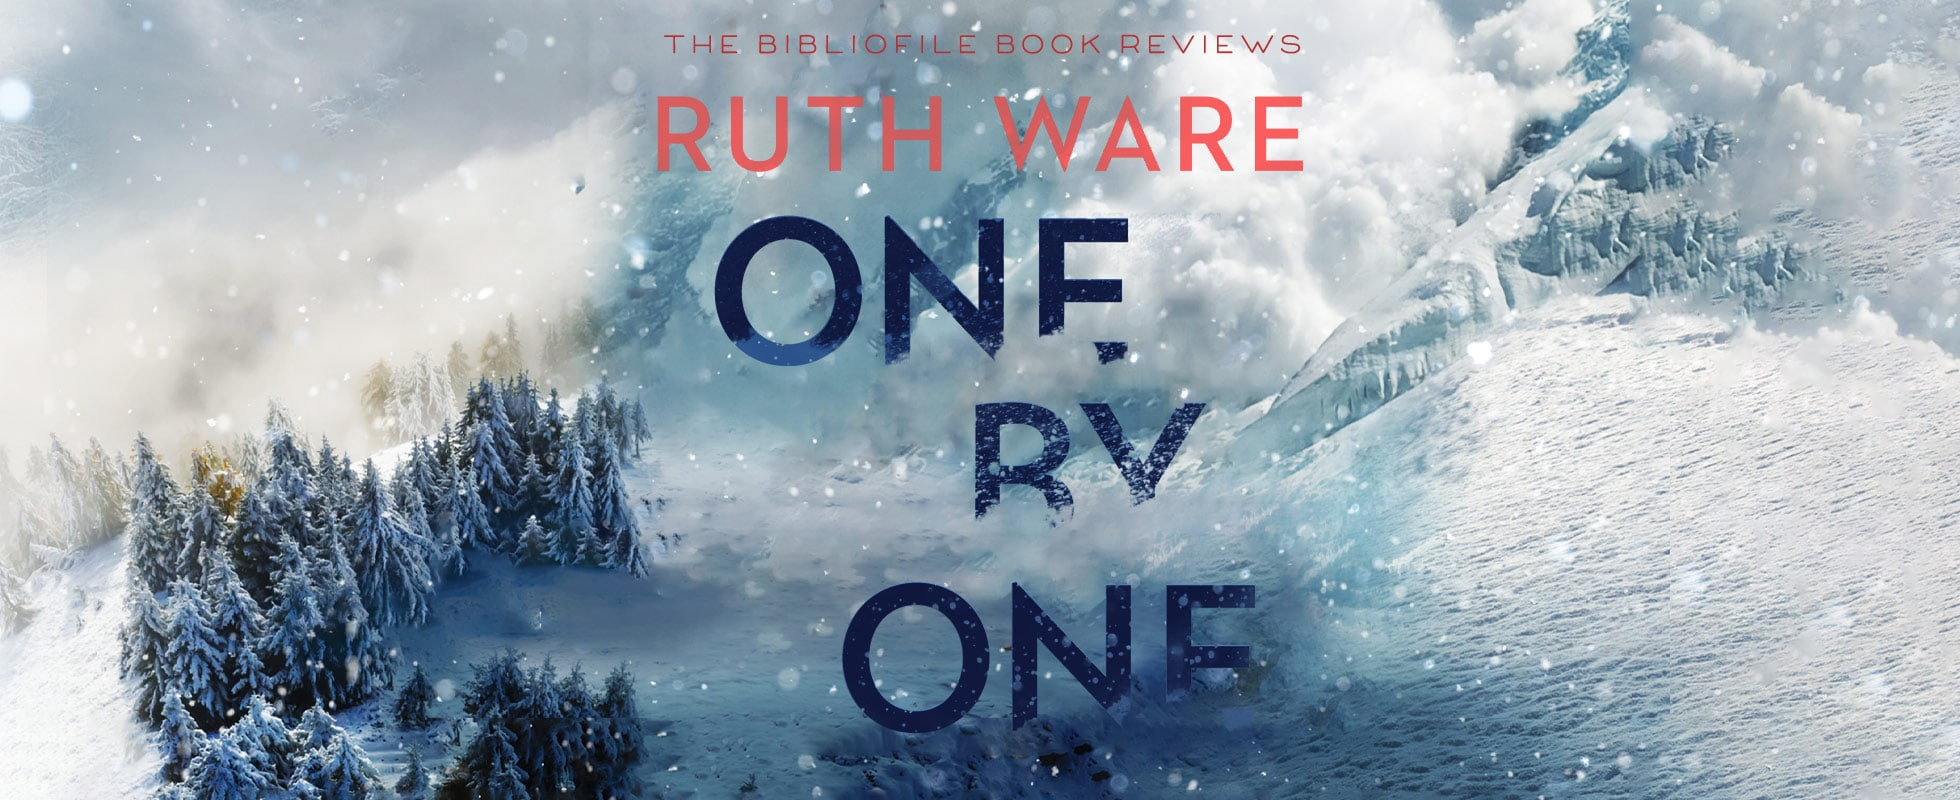 one by one by ruth ware explanation ending spoilers Book Summary, Chapter-by-Chapter Summary, Detailed Plot Synopsis, Book Review